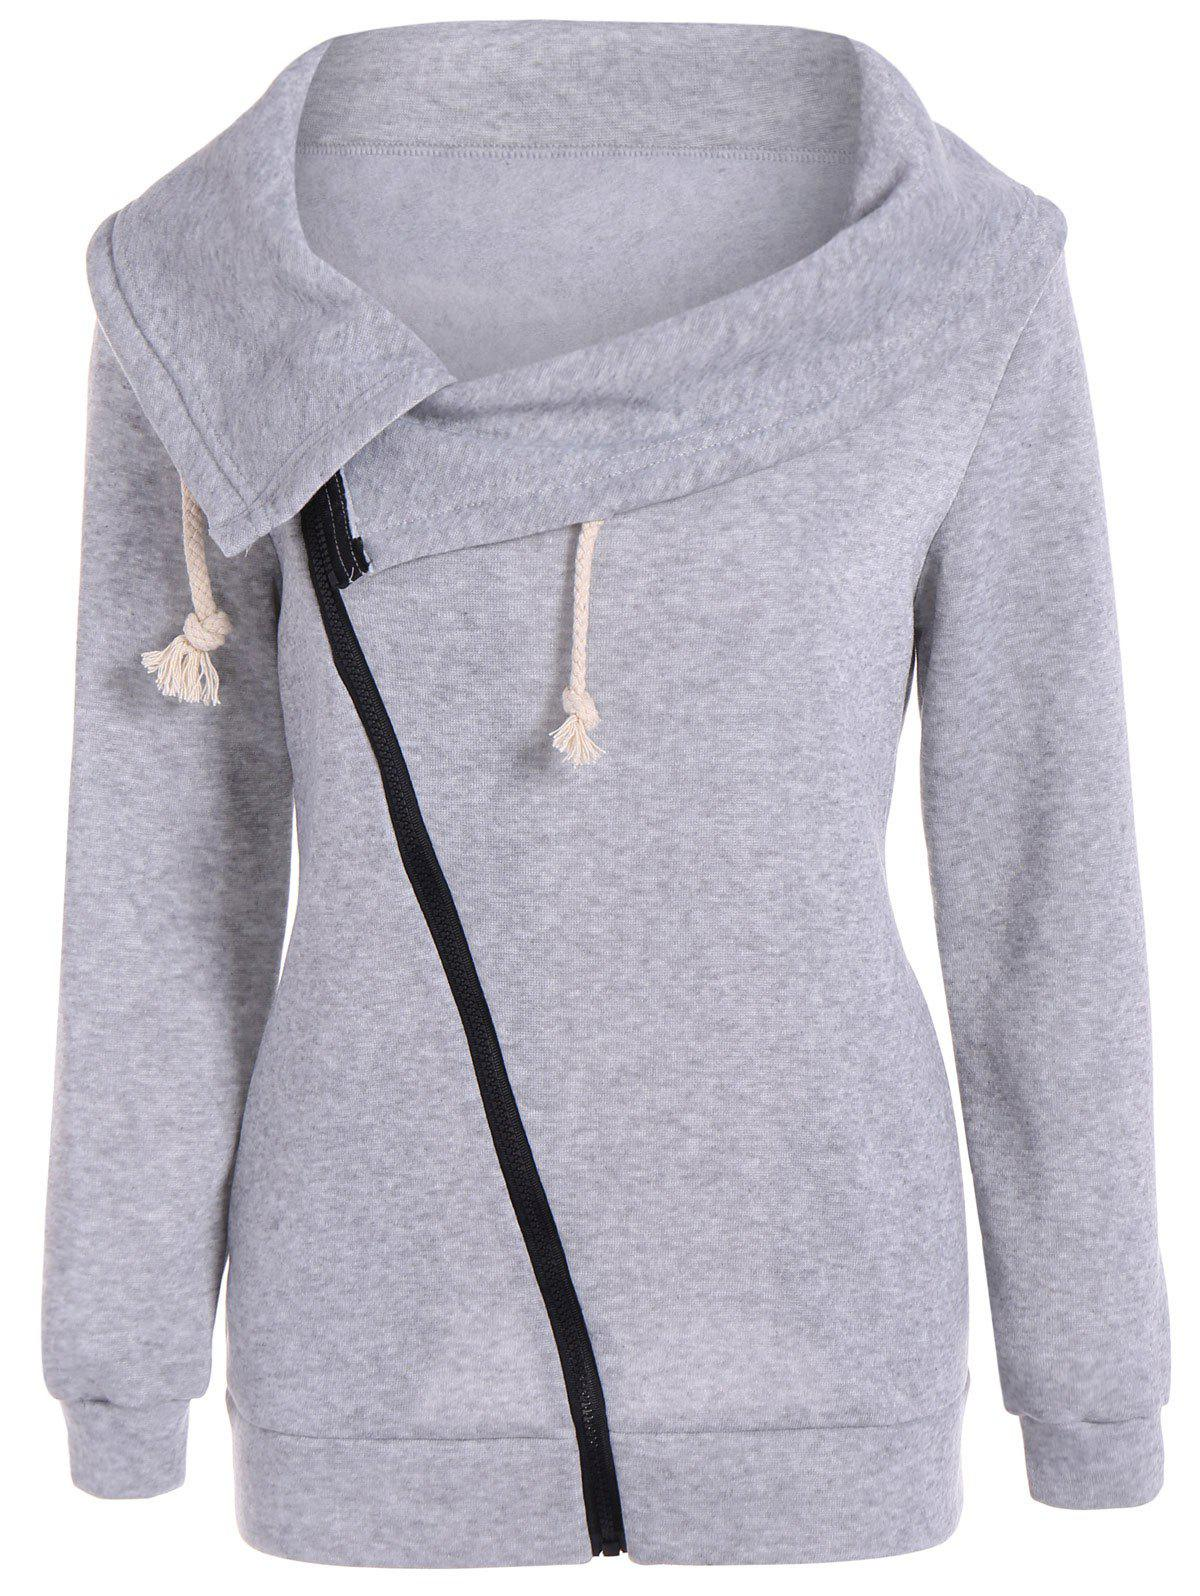 Inclined Zipper Pockets Sweatshirt - GRAY M